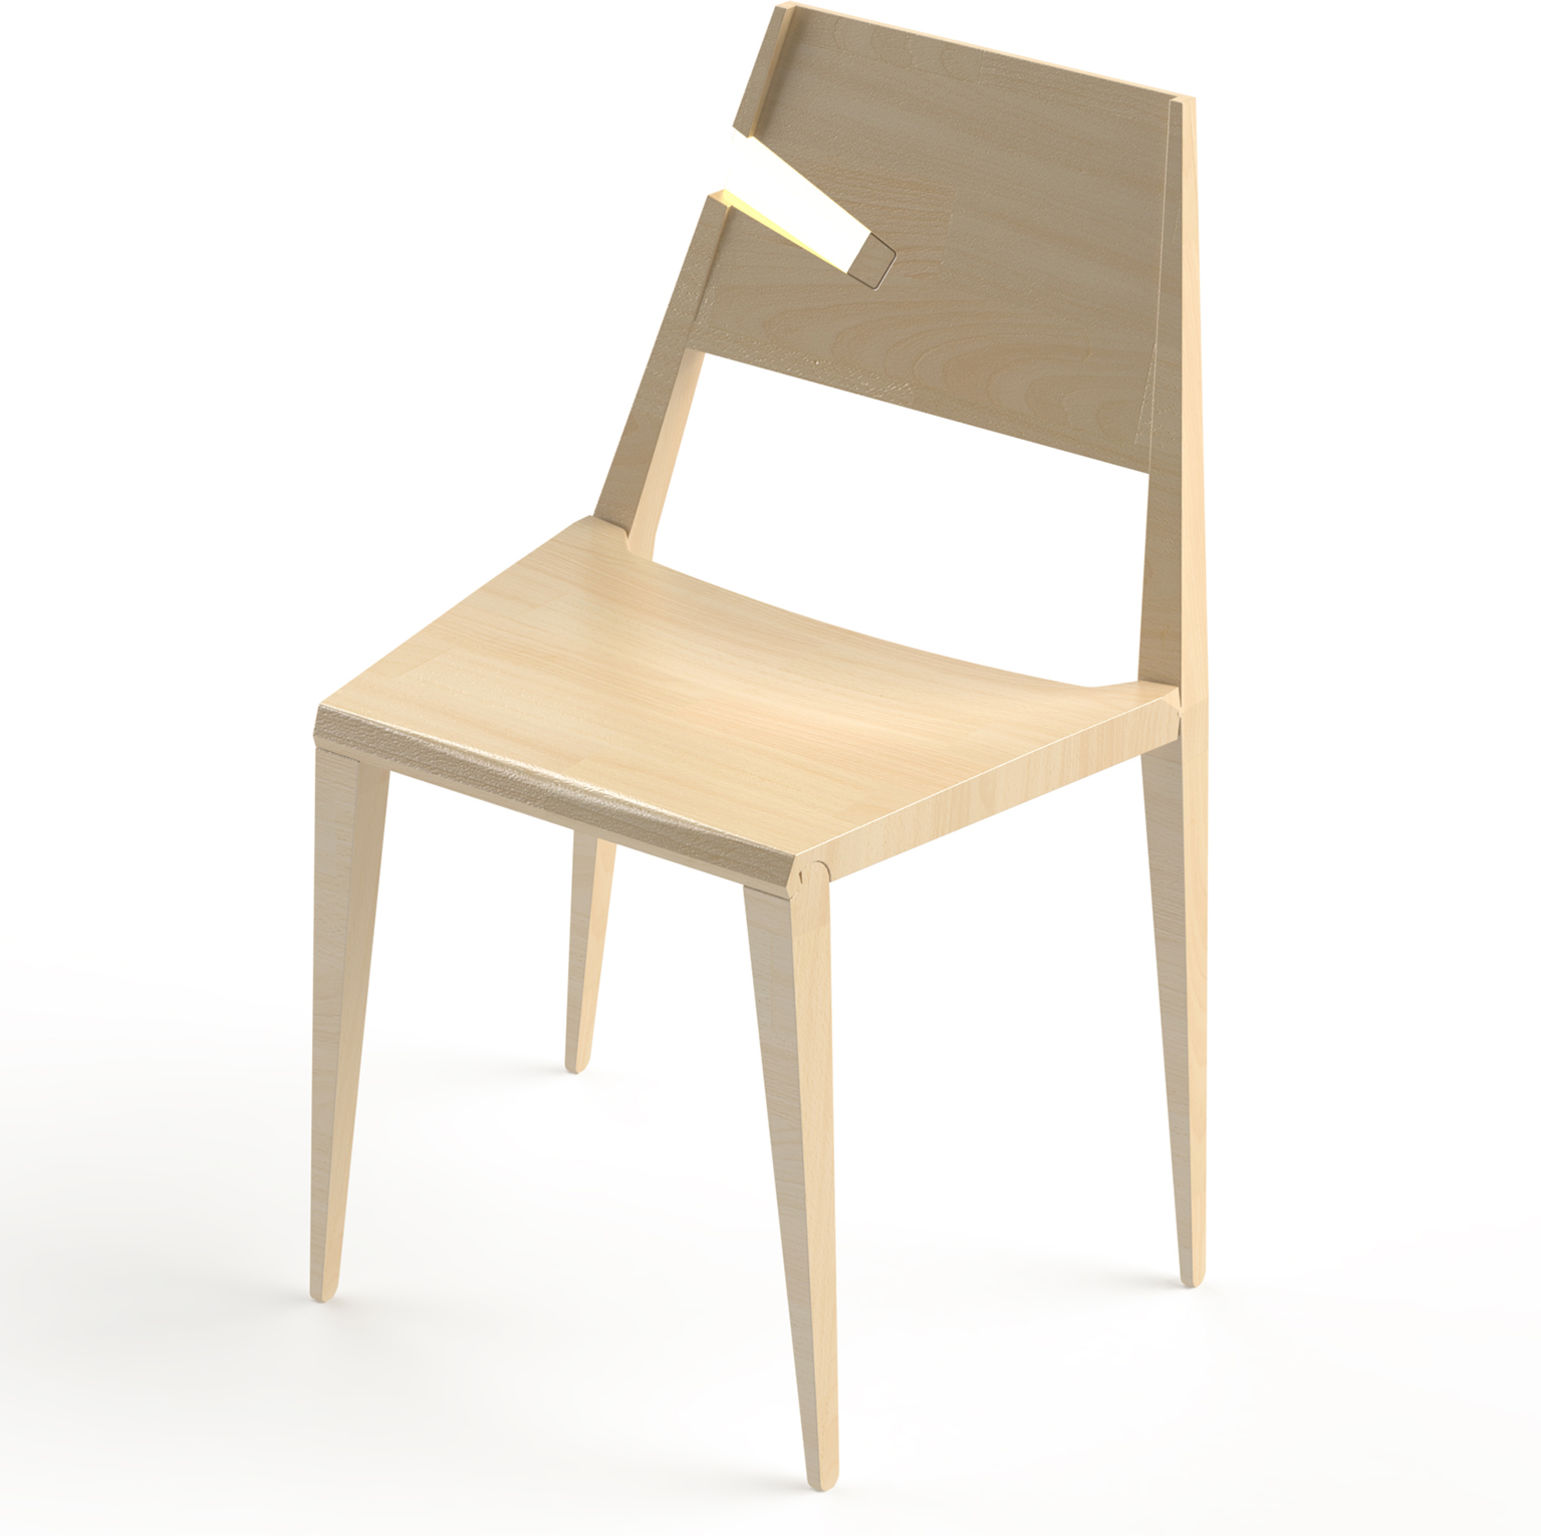 Relax chair - Entry - iF WORLD DESIGN GUIDE